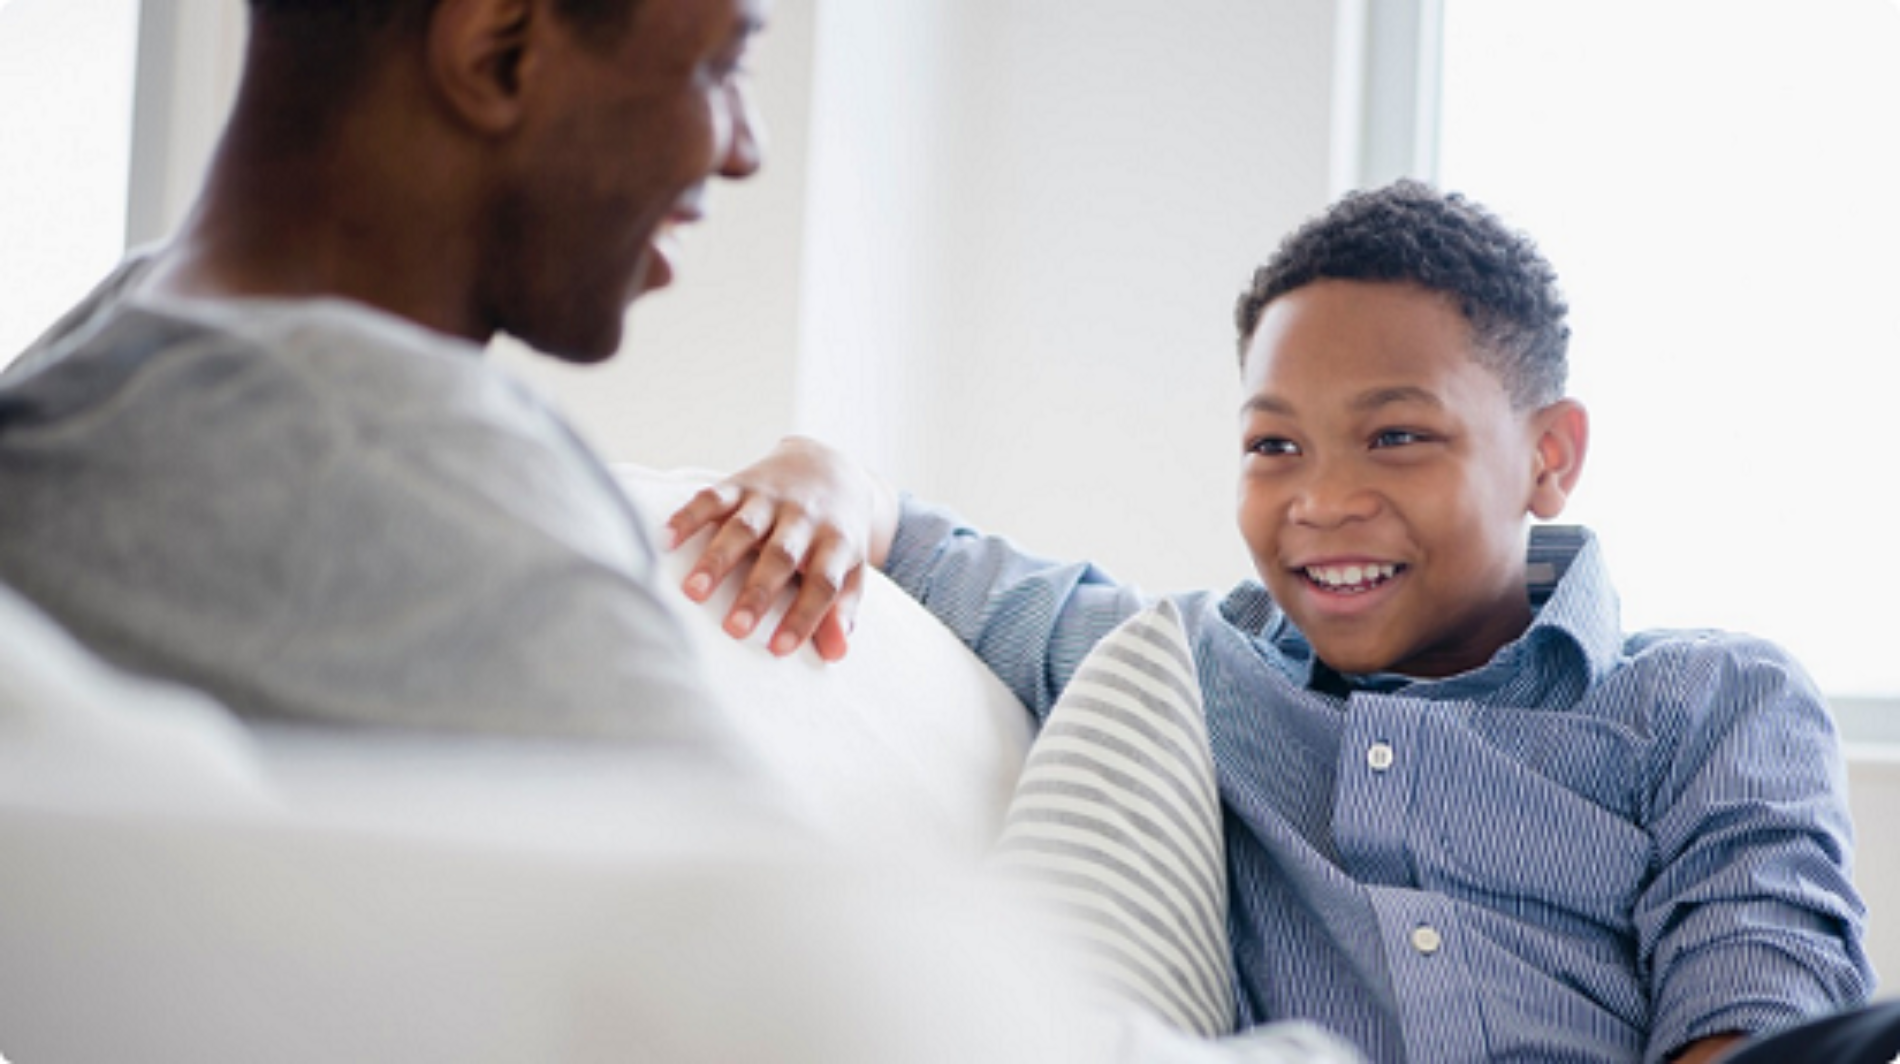 The Day I Find Out My Son Is Gay